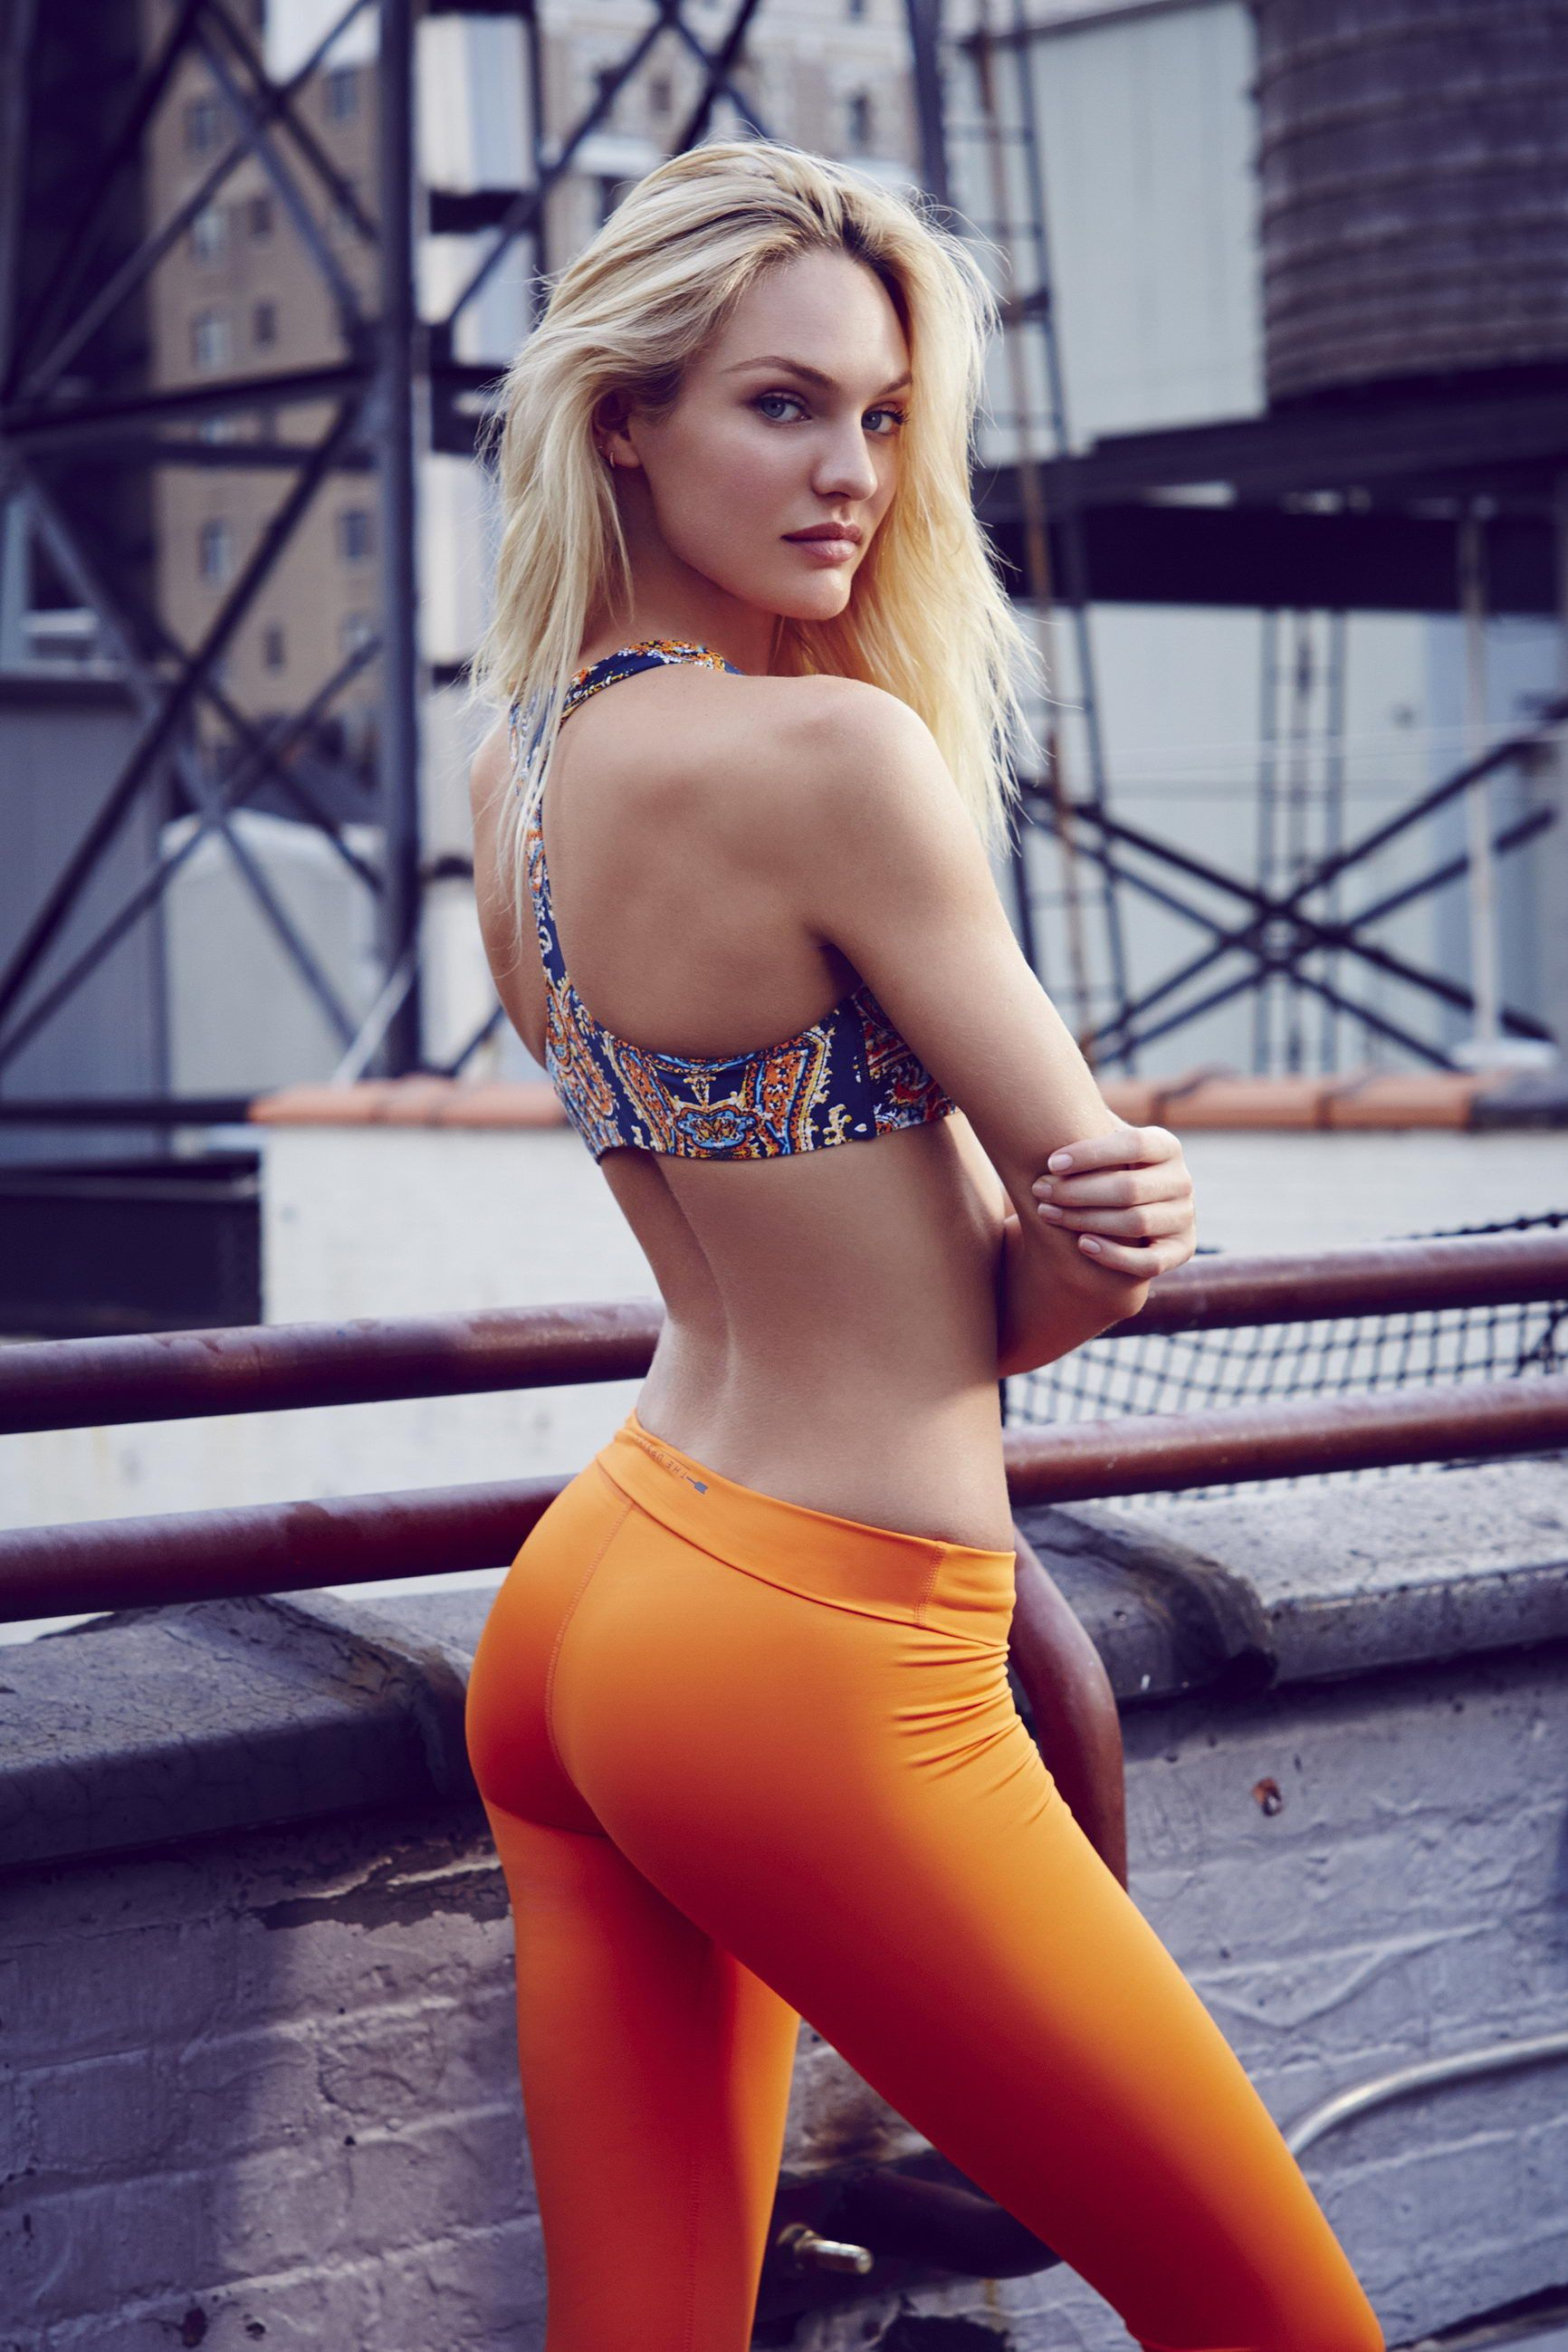 Checkout this yoga pants wearing bigtime awesome chick that we know you will adore :)